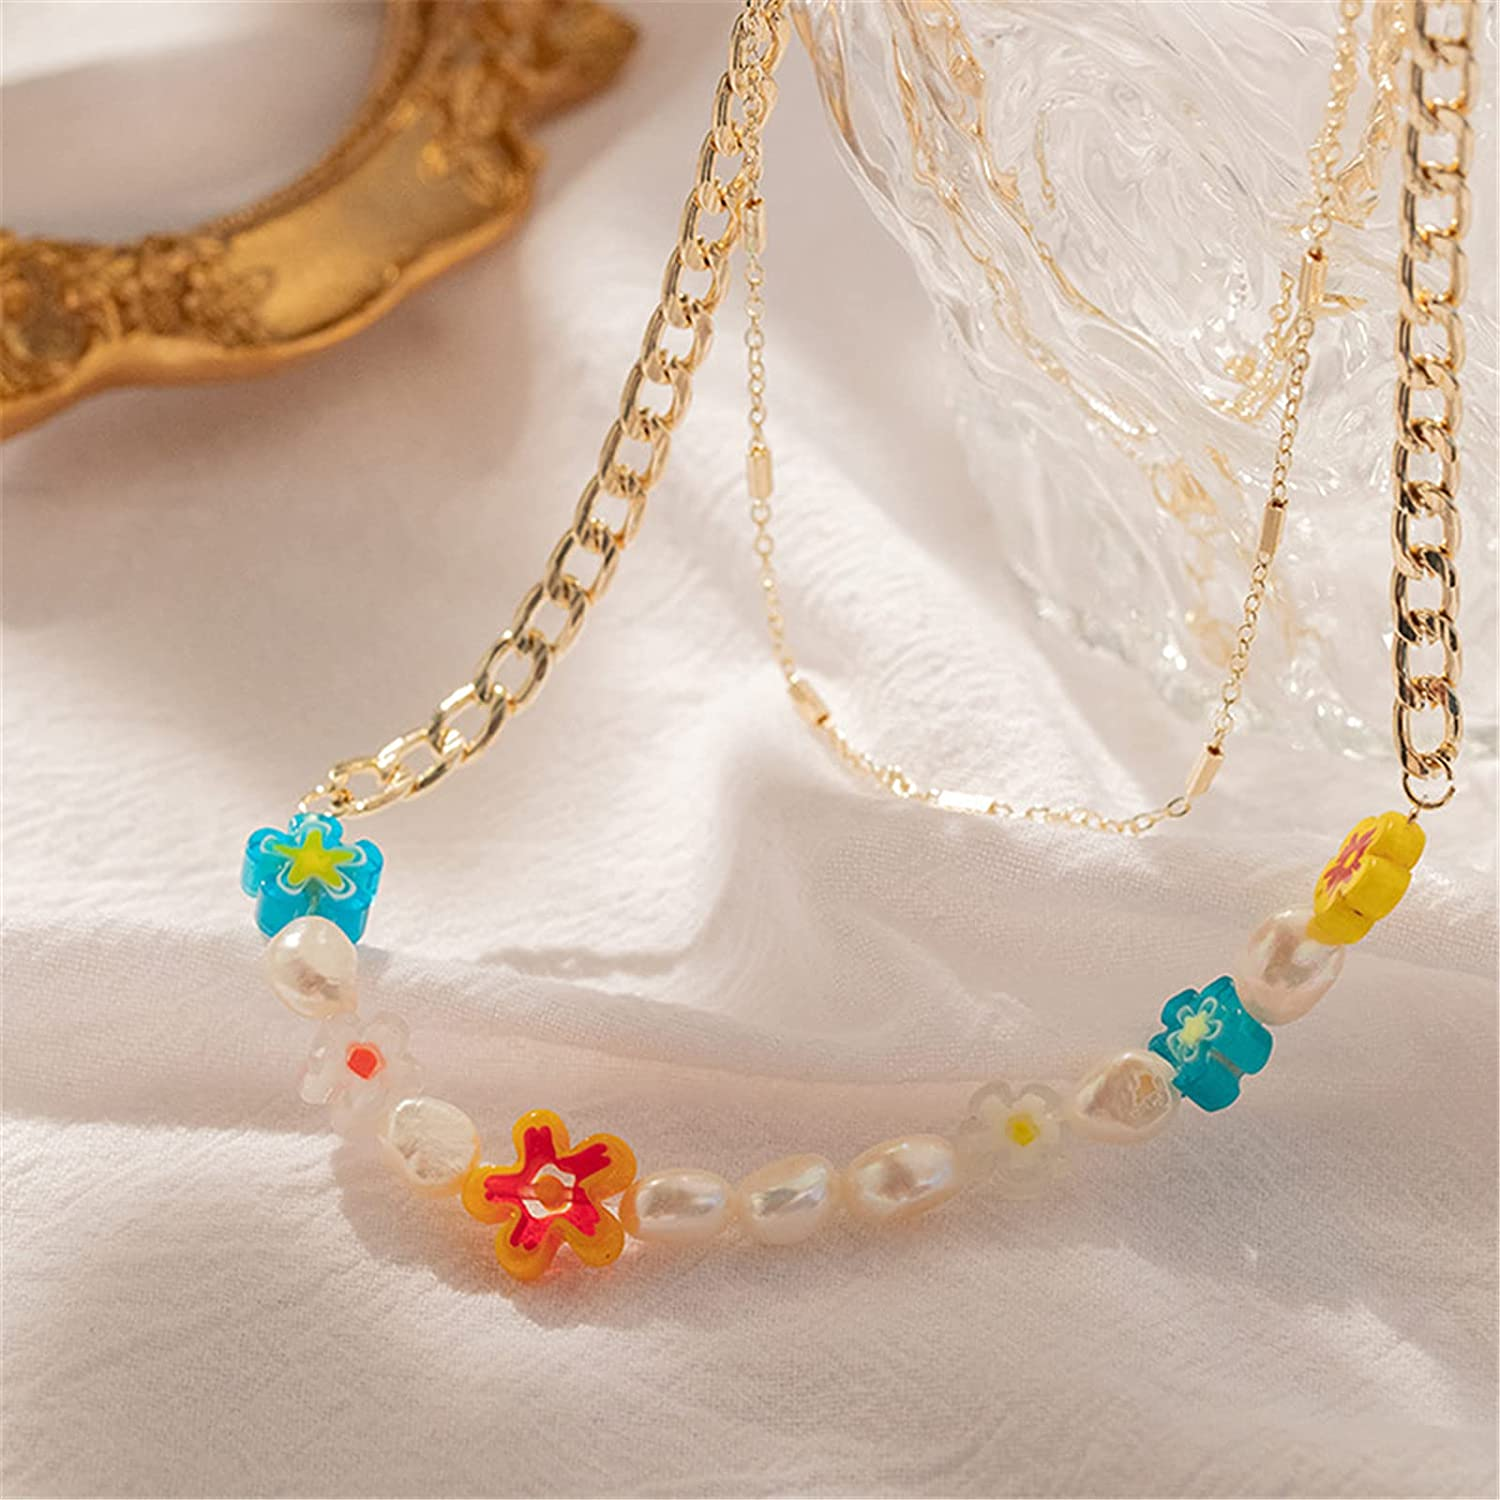 Layered Colorful Chunky Link Chain Flower Pendant Faux Pearl Beaded Necklace Set for Women Teen Girl Handmade Glass Beads Seed Choker Collar Necklace Bohemian Summer Beach Jewelry